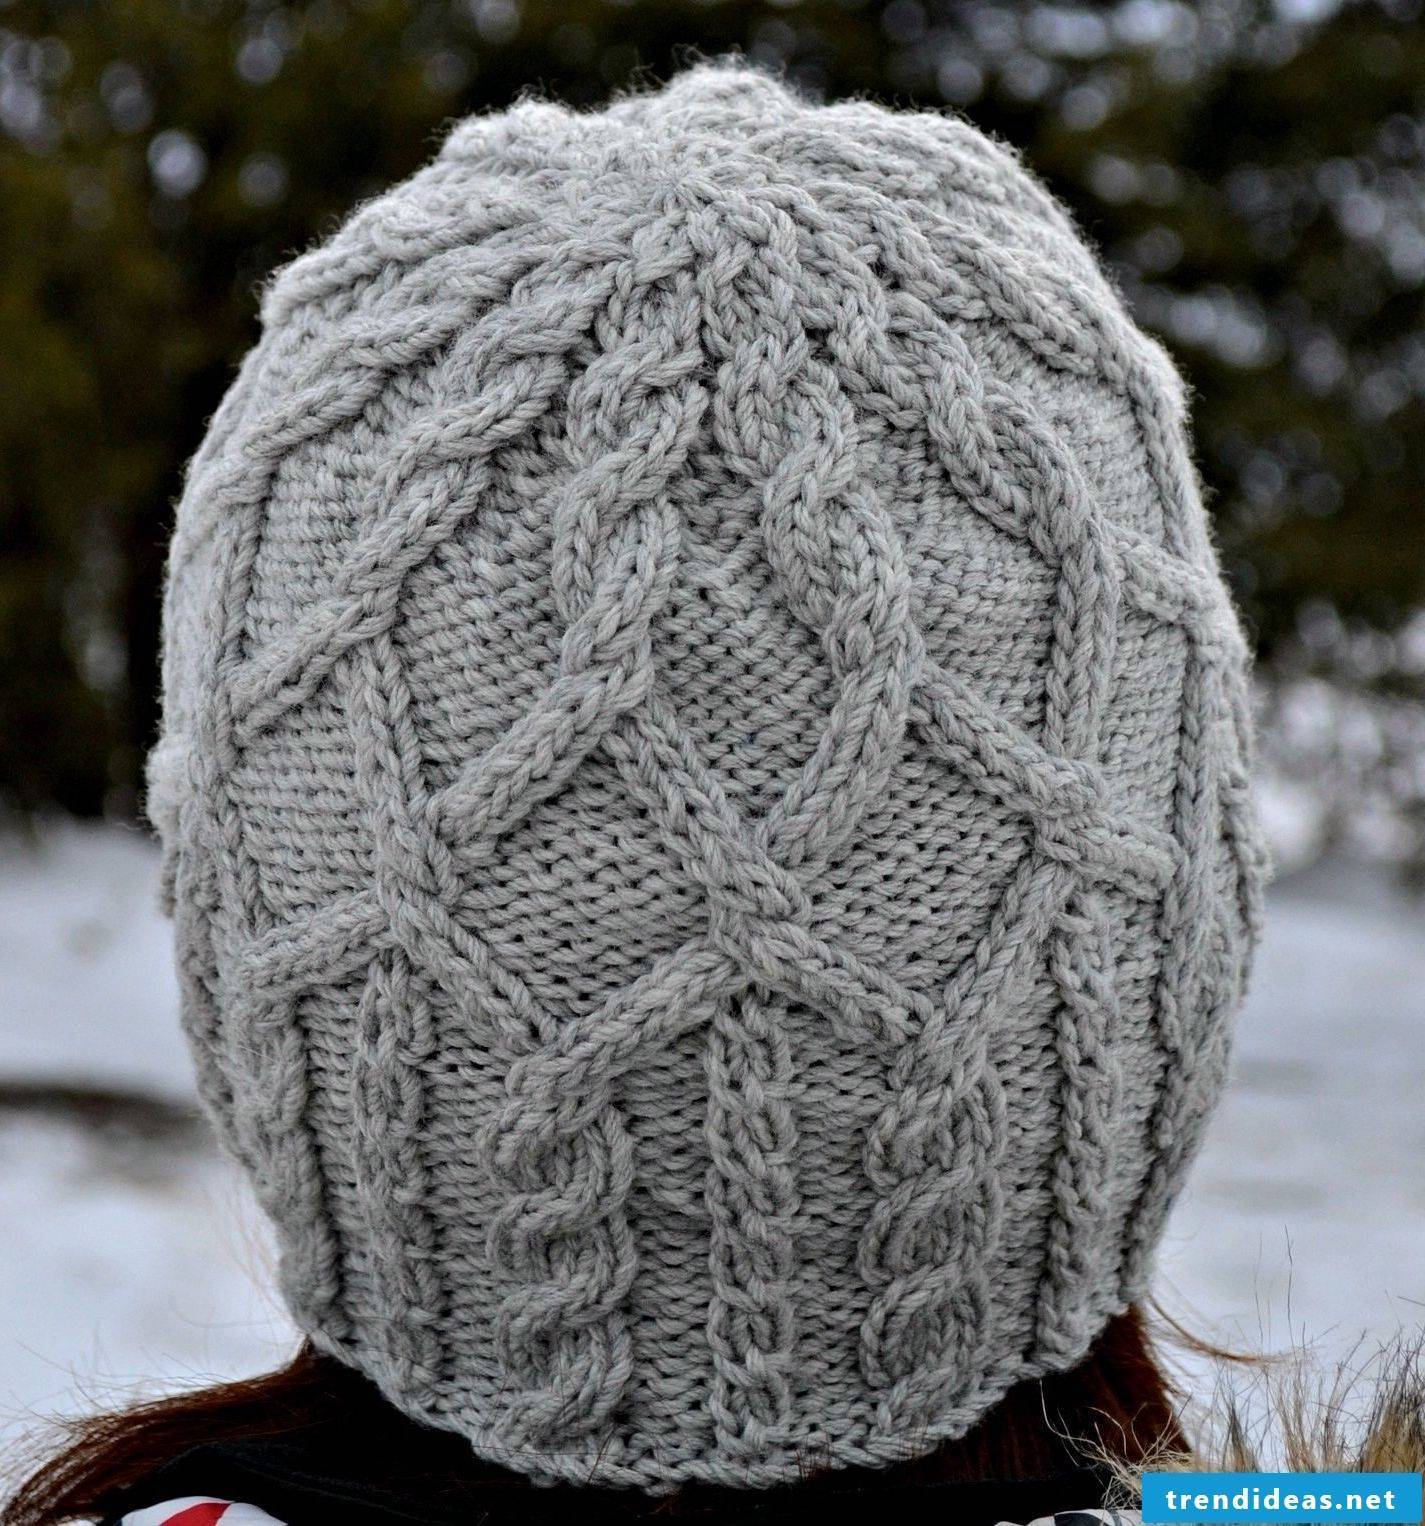 Great knit cap with interesting pattern